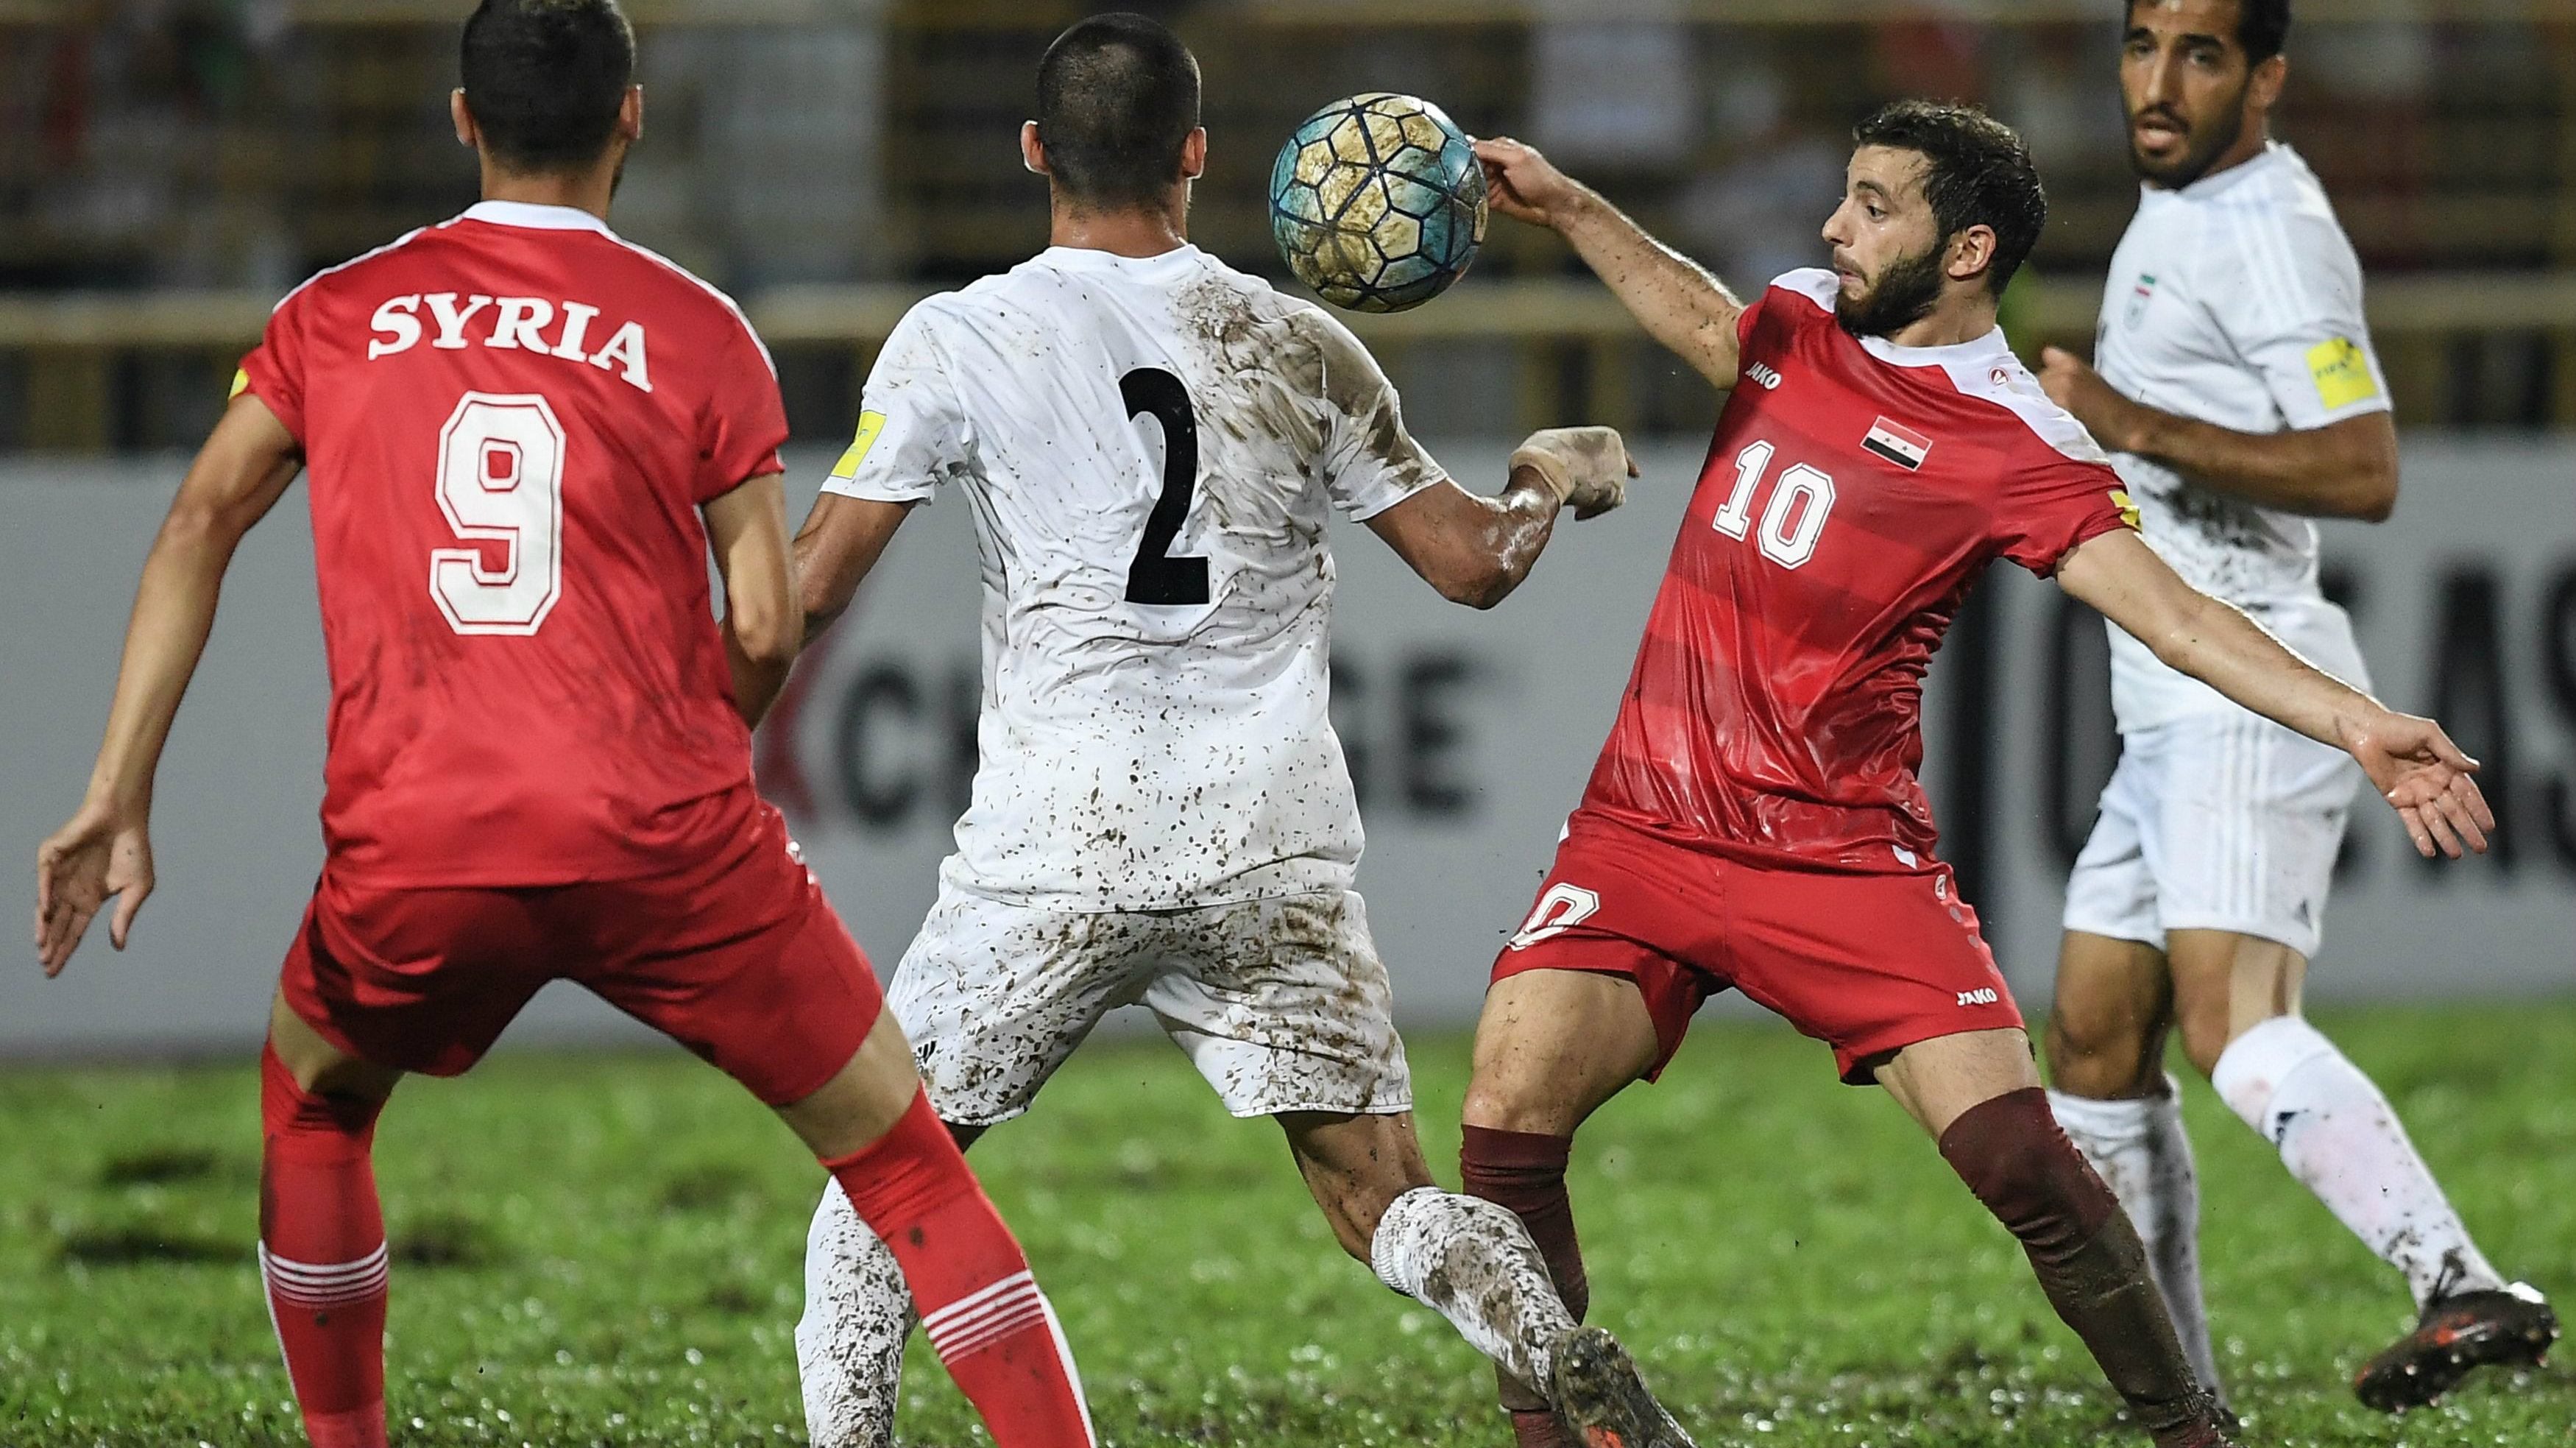 Syria in action during a home qualifier in Malaysia.